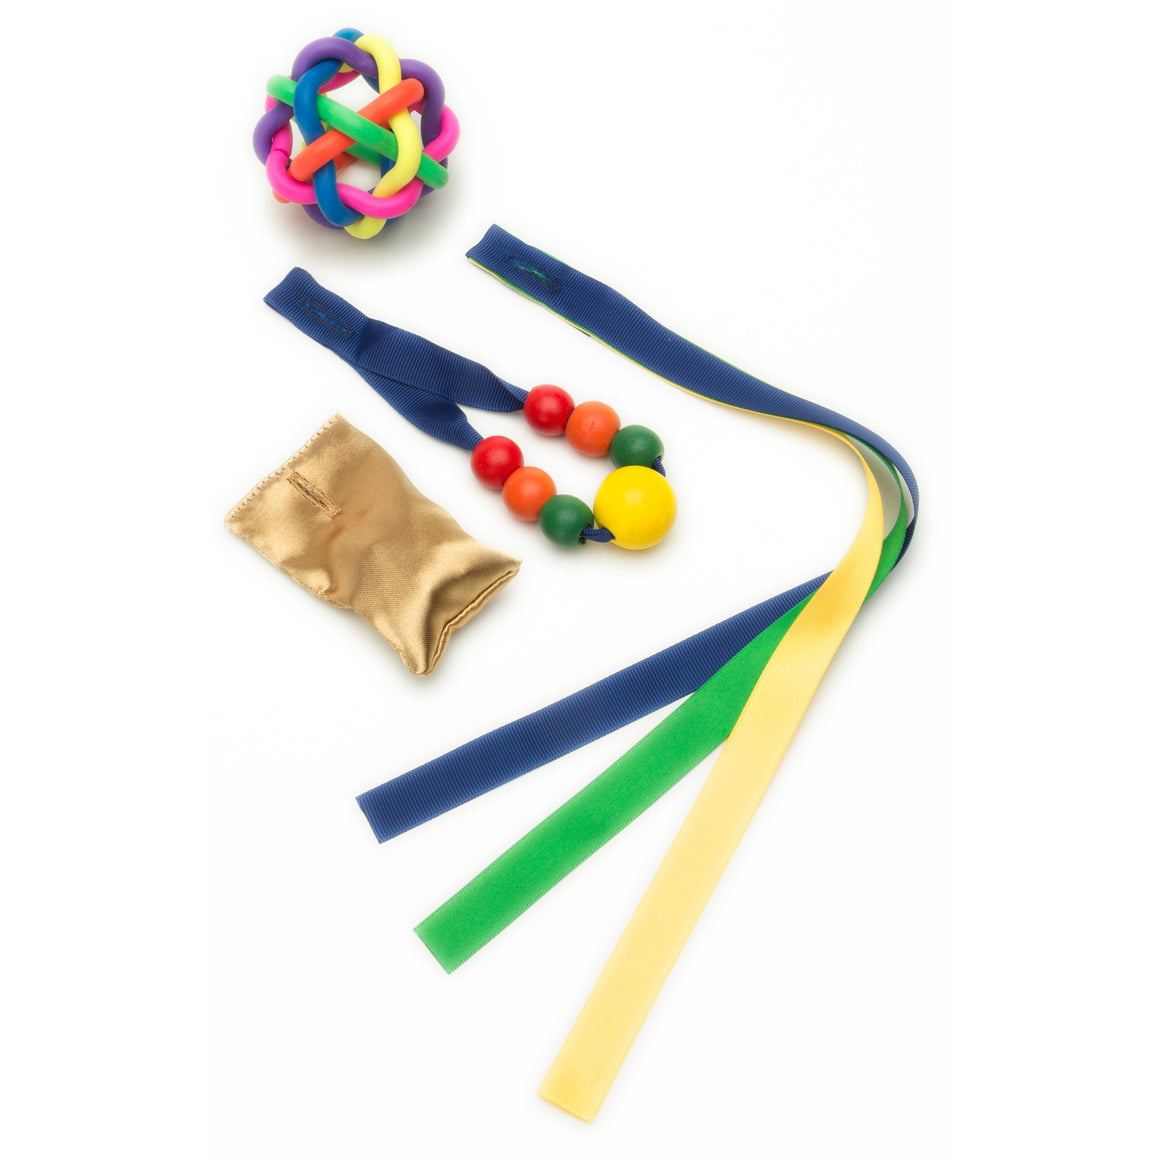 Twiddle® 4 in 1 Accessory Activity Kit - Twiddle - Occupational & Physical Therapy Equipment - 4Twiddles